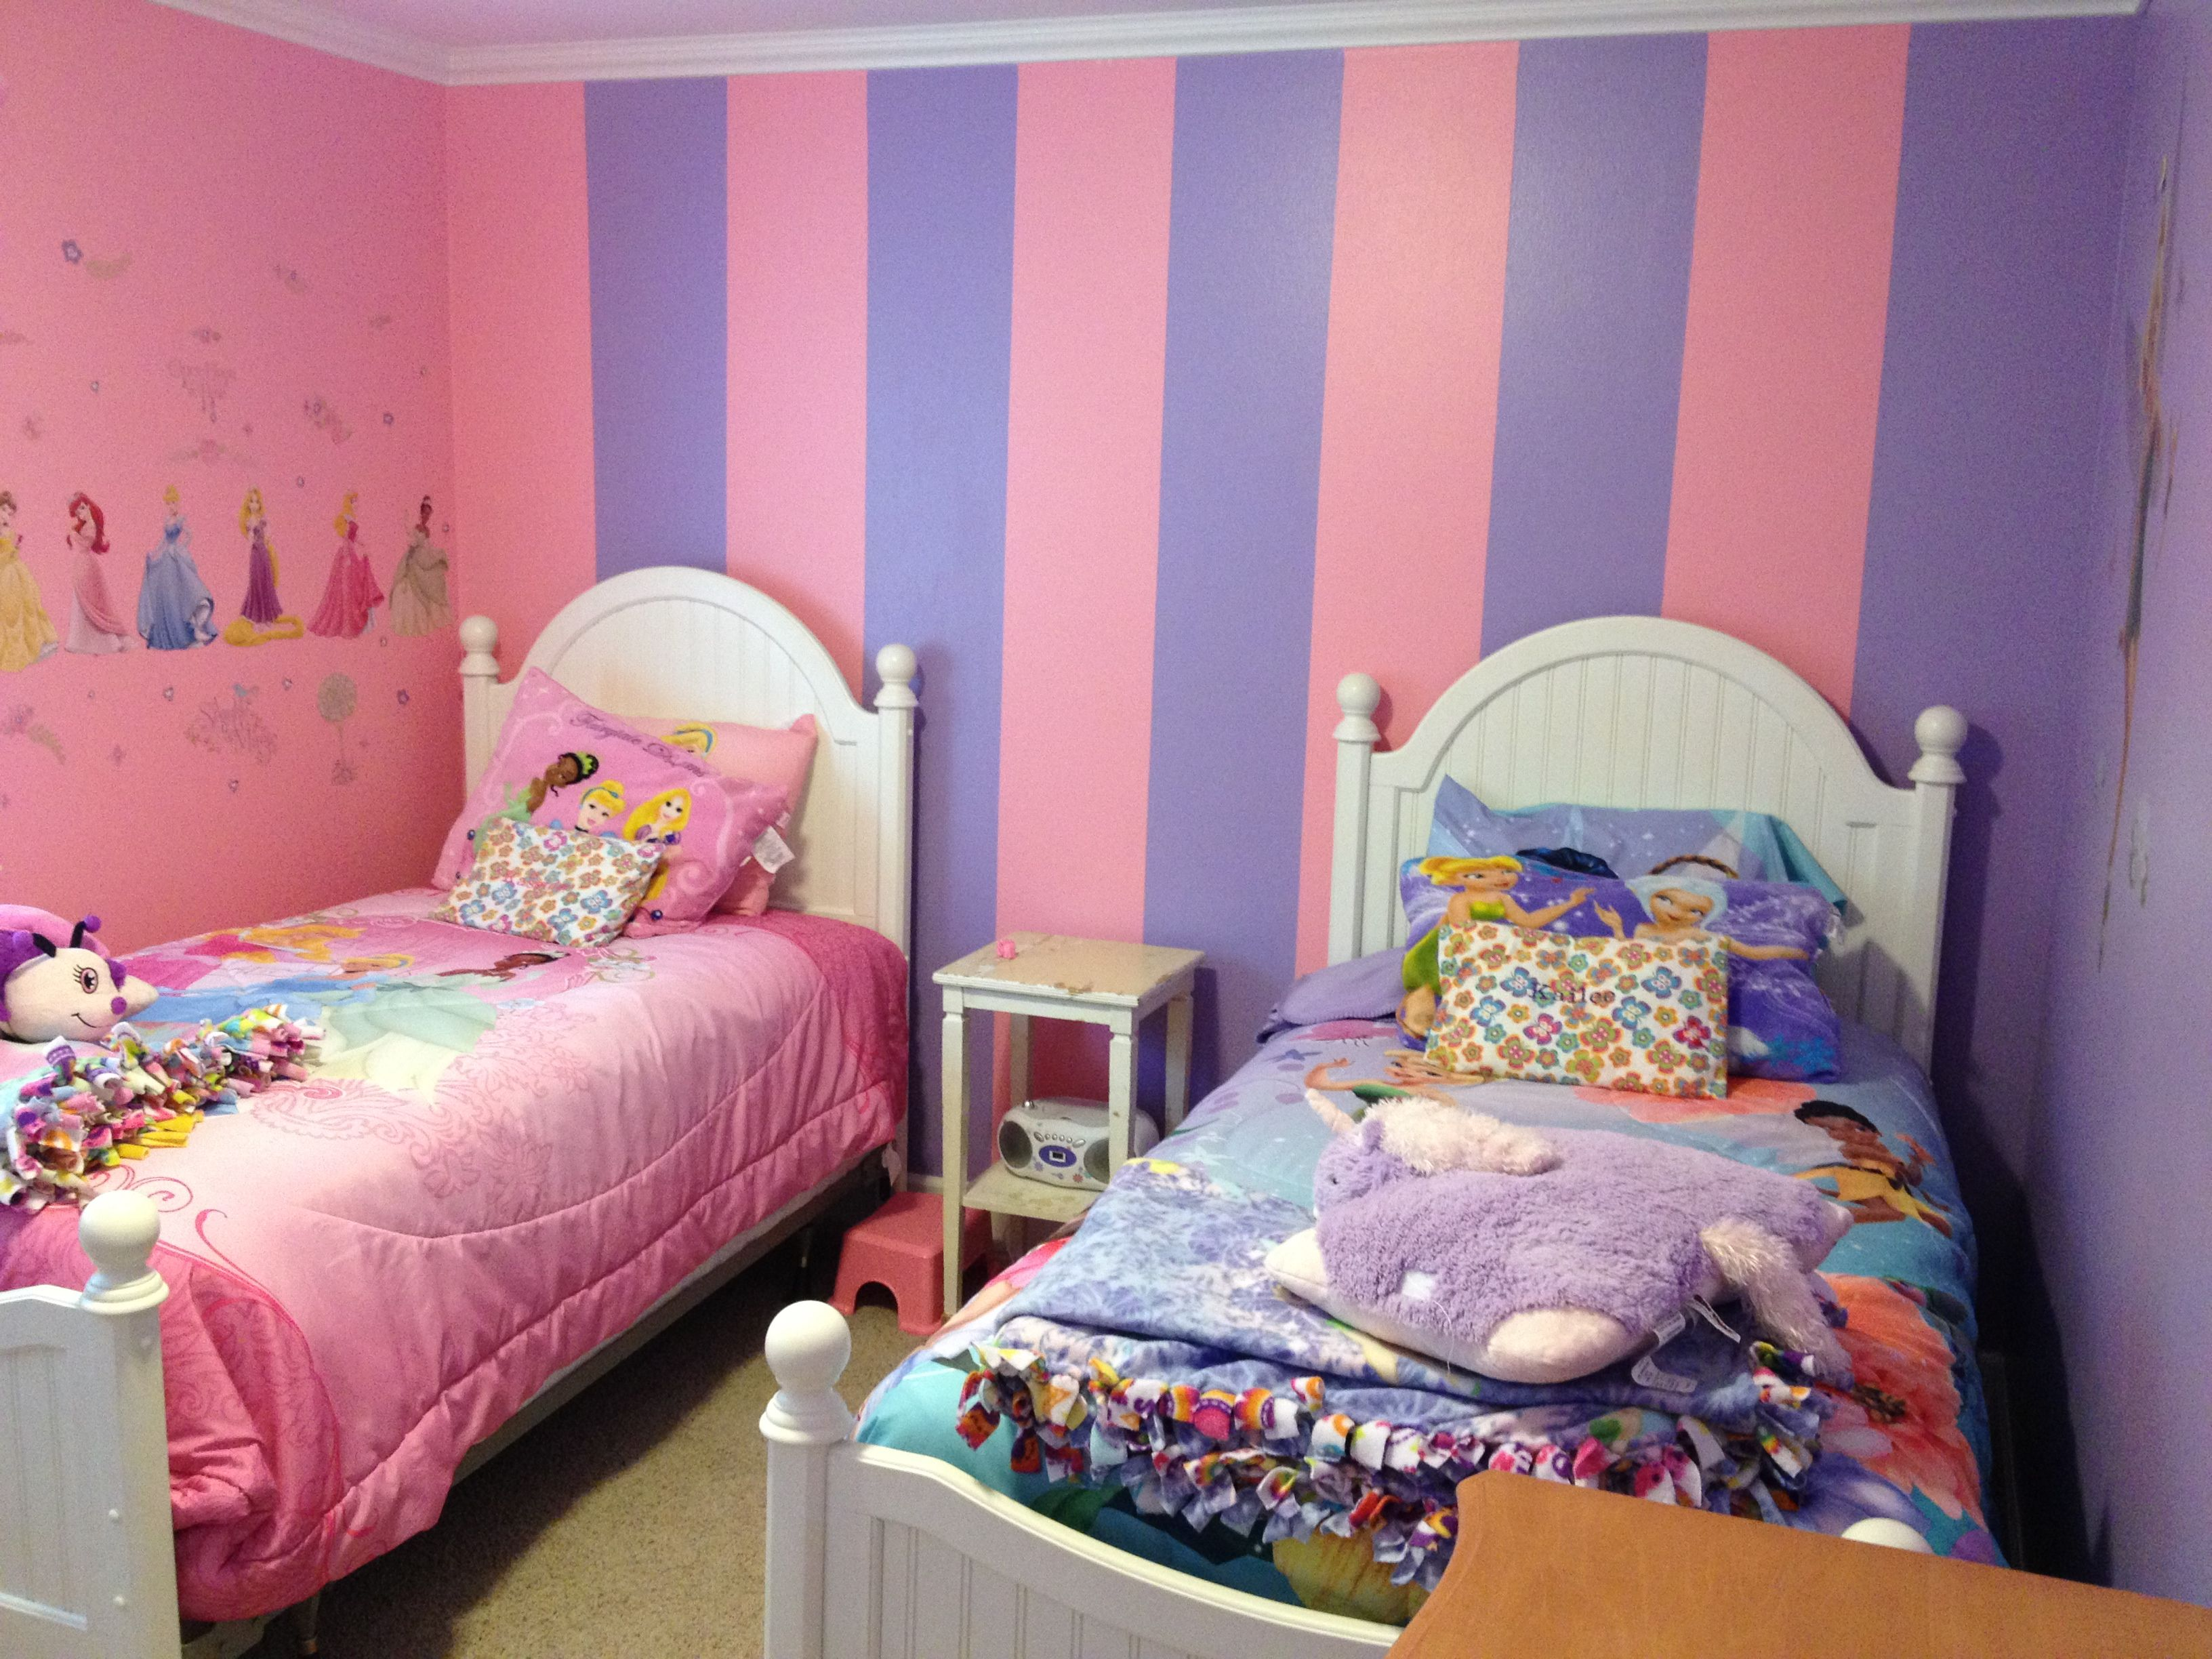 Room For Twin Girls One Wall Is Pink And One Purple One Wall Has The Stripes And The Wall You Can Girls Room Paint Children Room Girl Pink Bedroom For Girls